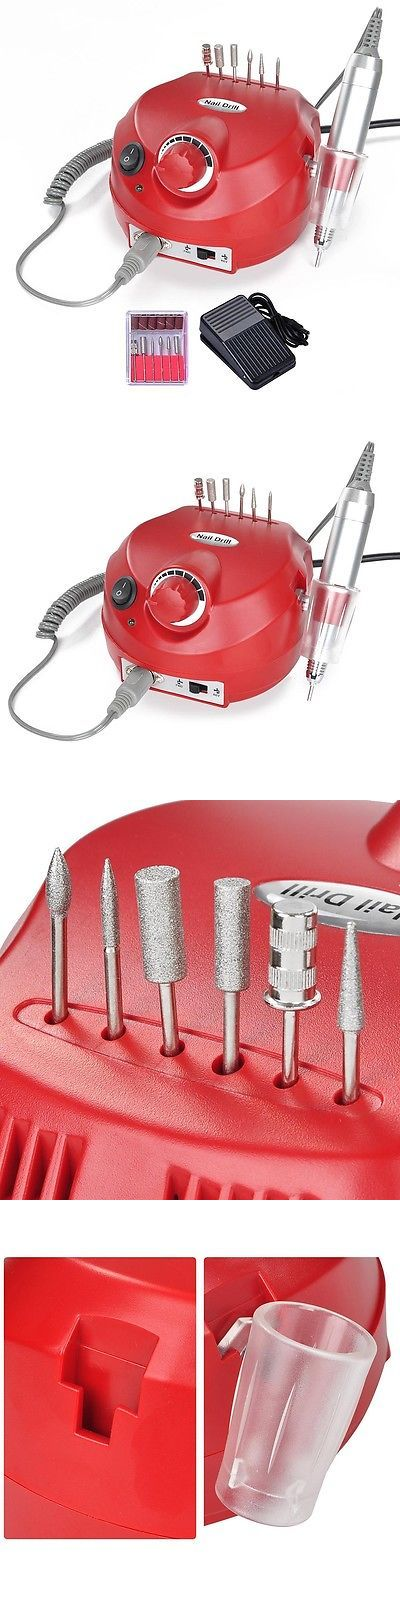 Manicure Pedicure Tools and Kits: Professional Manicure Pedicure Electric Drill File Nail Art Pen Machine Kit Red BUY IT NOW ONLY: $35.9